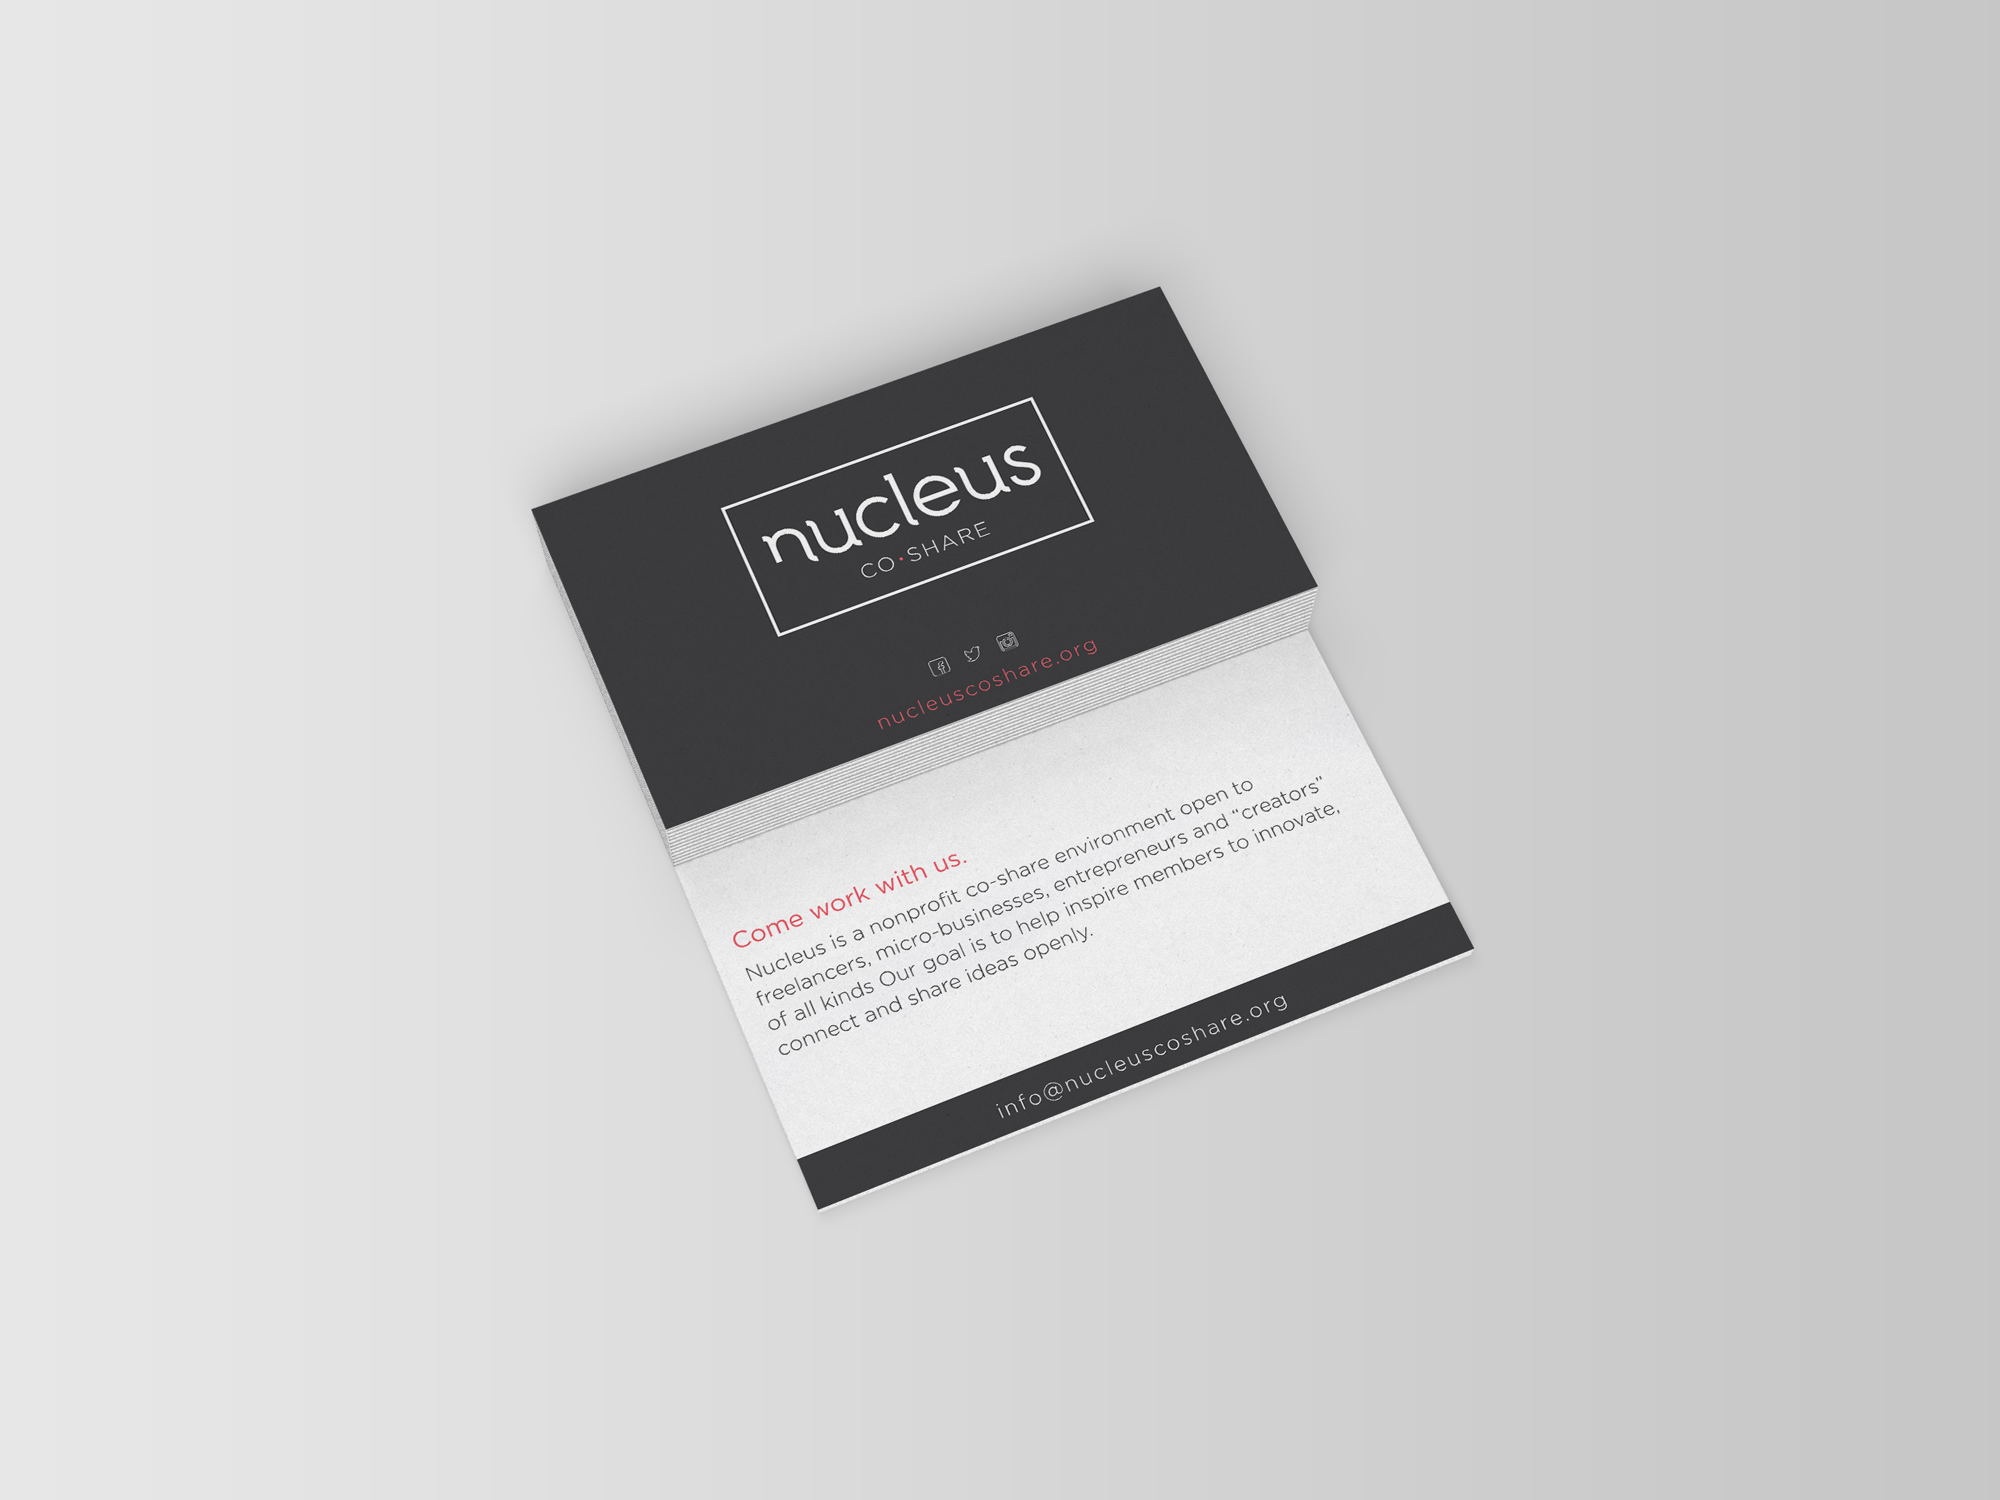 A photo of a business card design